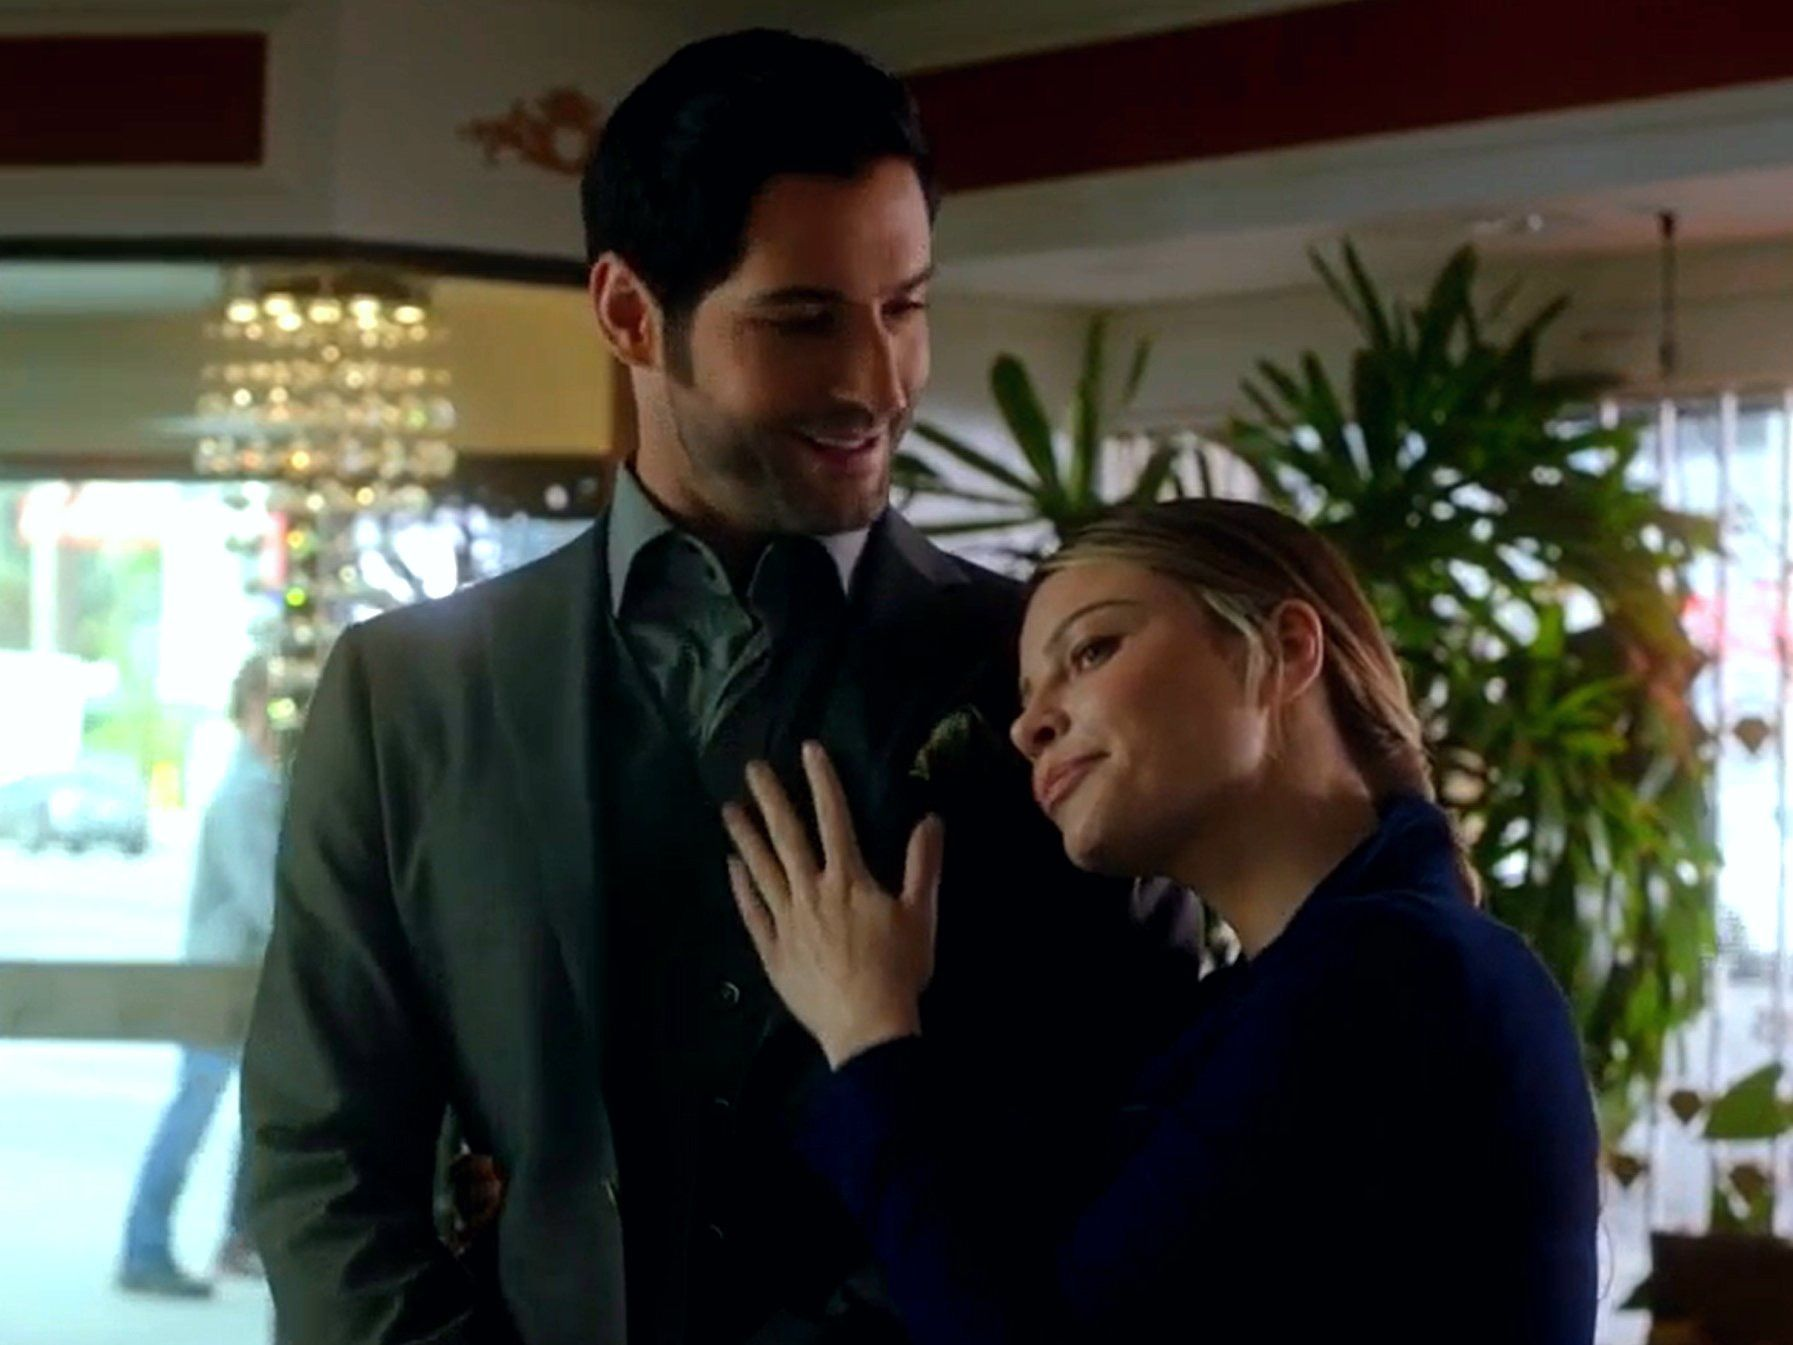 Pin By Ingrid Ruud On Shows And Movies Lucifer Tom Ellis Lucifer Lucifer Morningstar